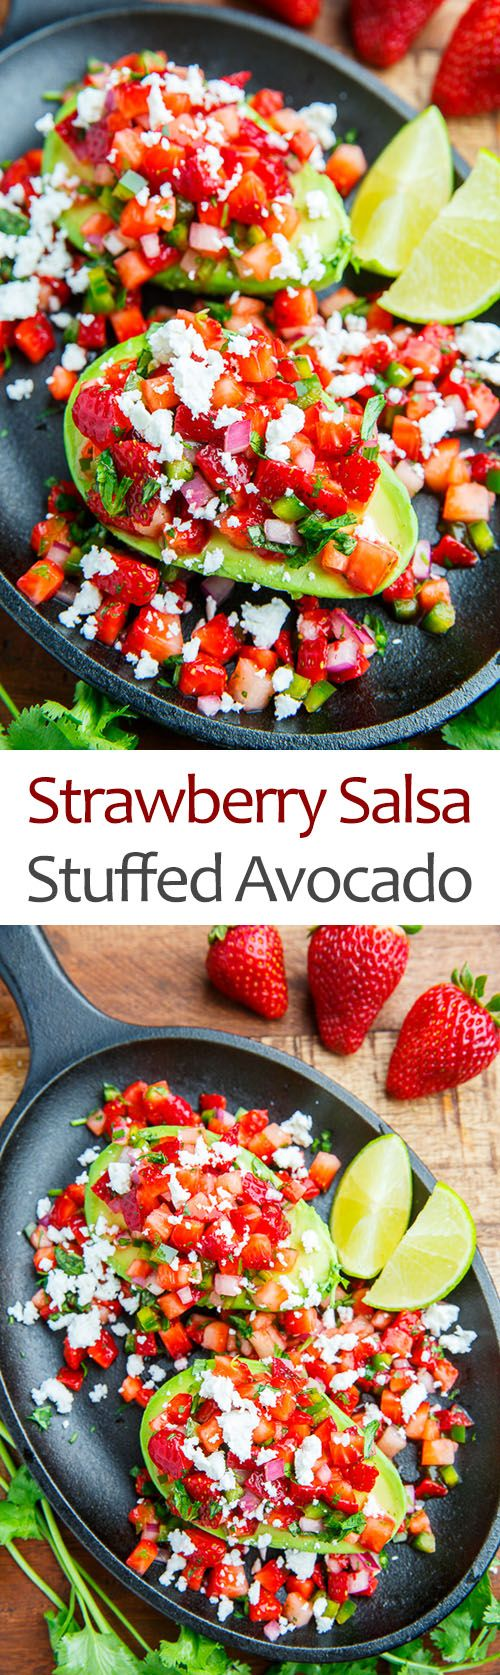 Strawberry Salsa Stuffed Avocado